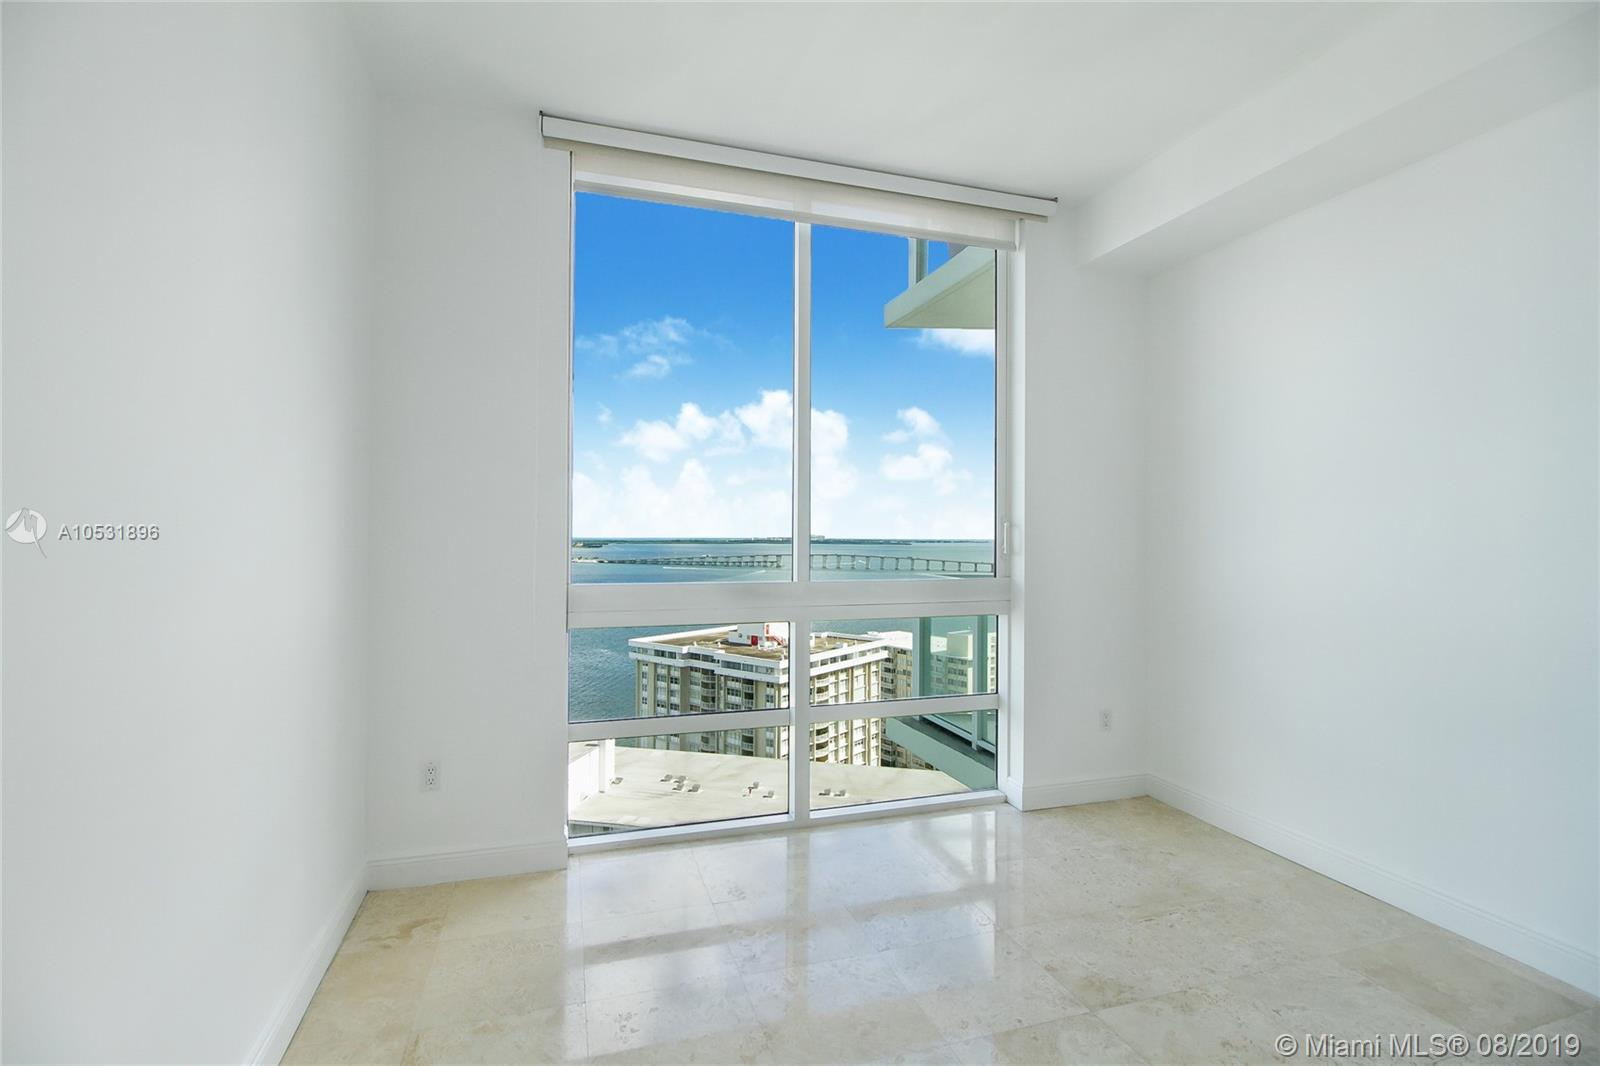 218 SE 14th St, Miami, Fl 33131, Emerald at Brickell #2305, Brickell, Miami A10531896 image #11